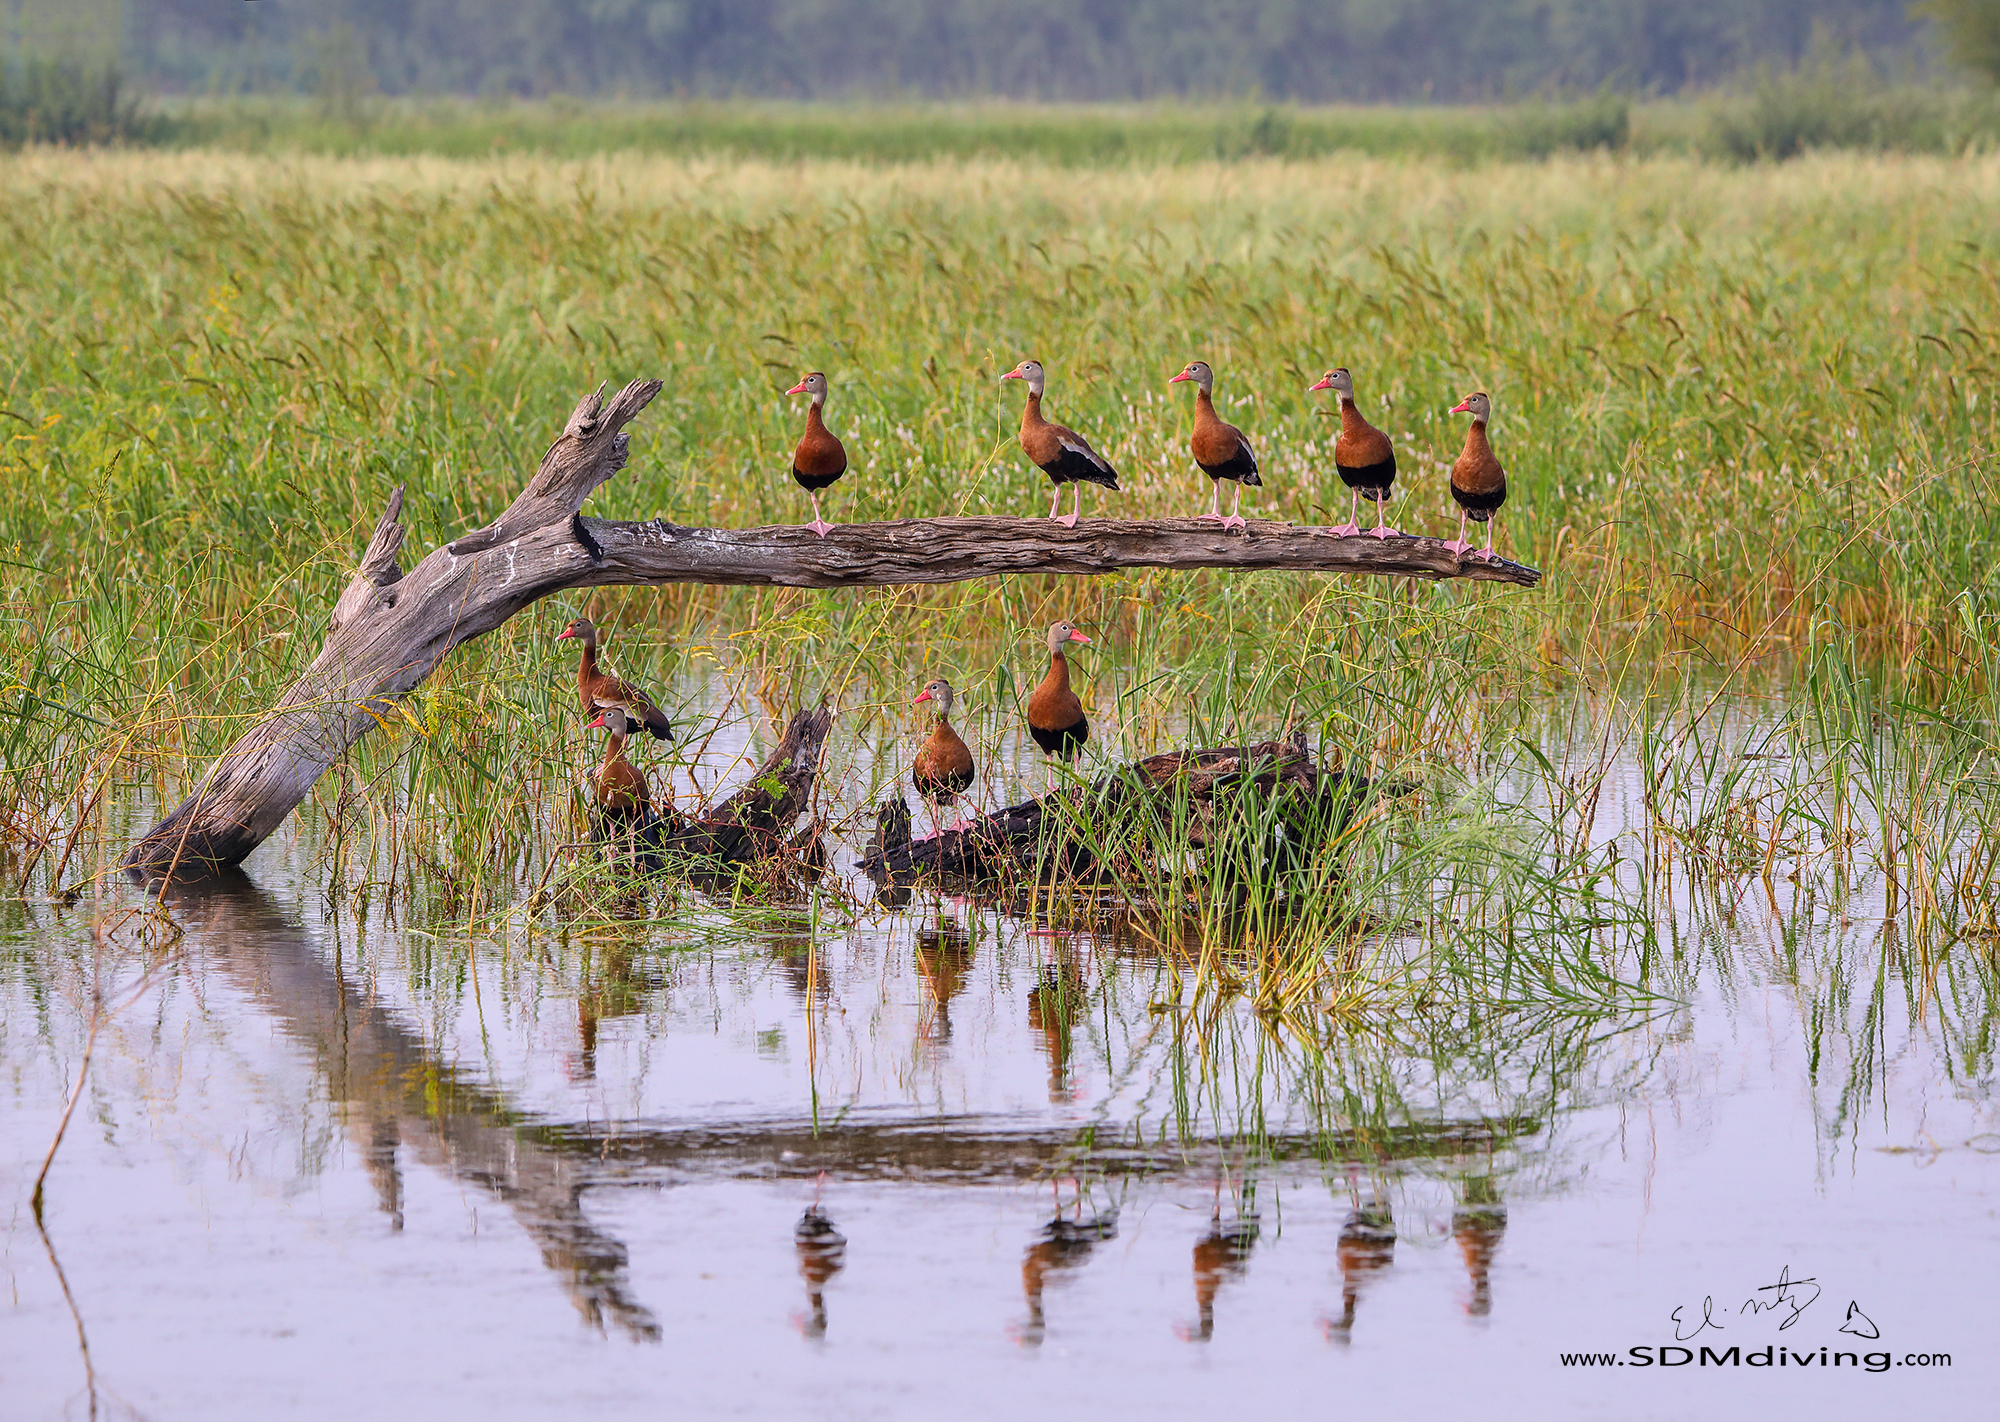 17. Black-bellied whistling ducks